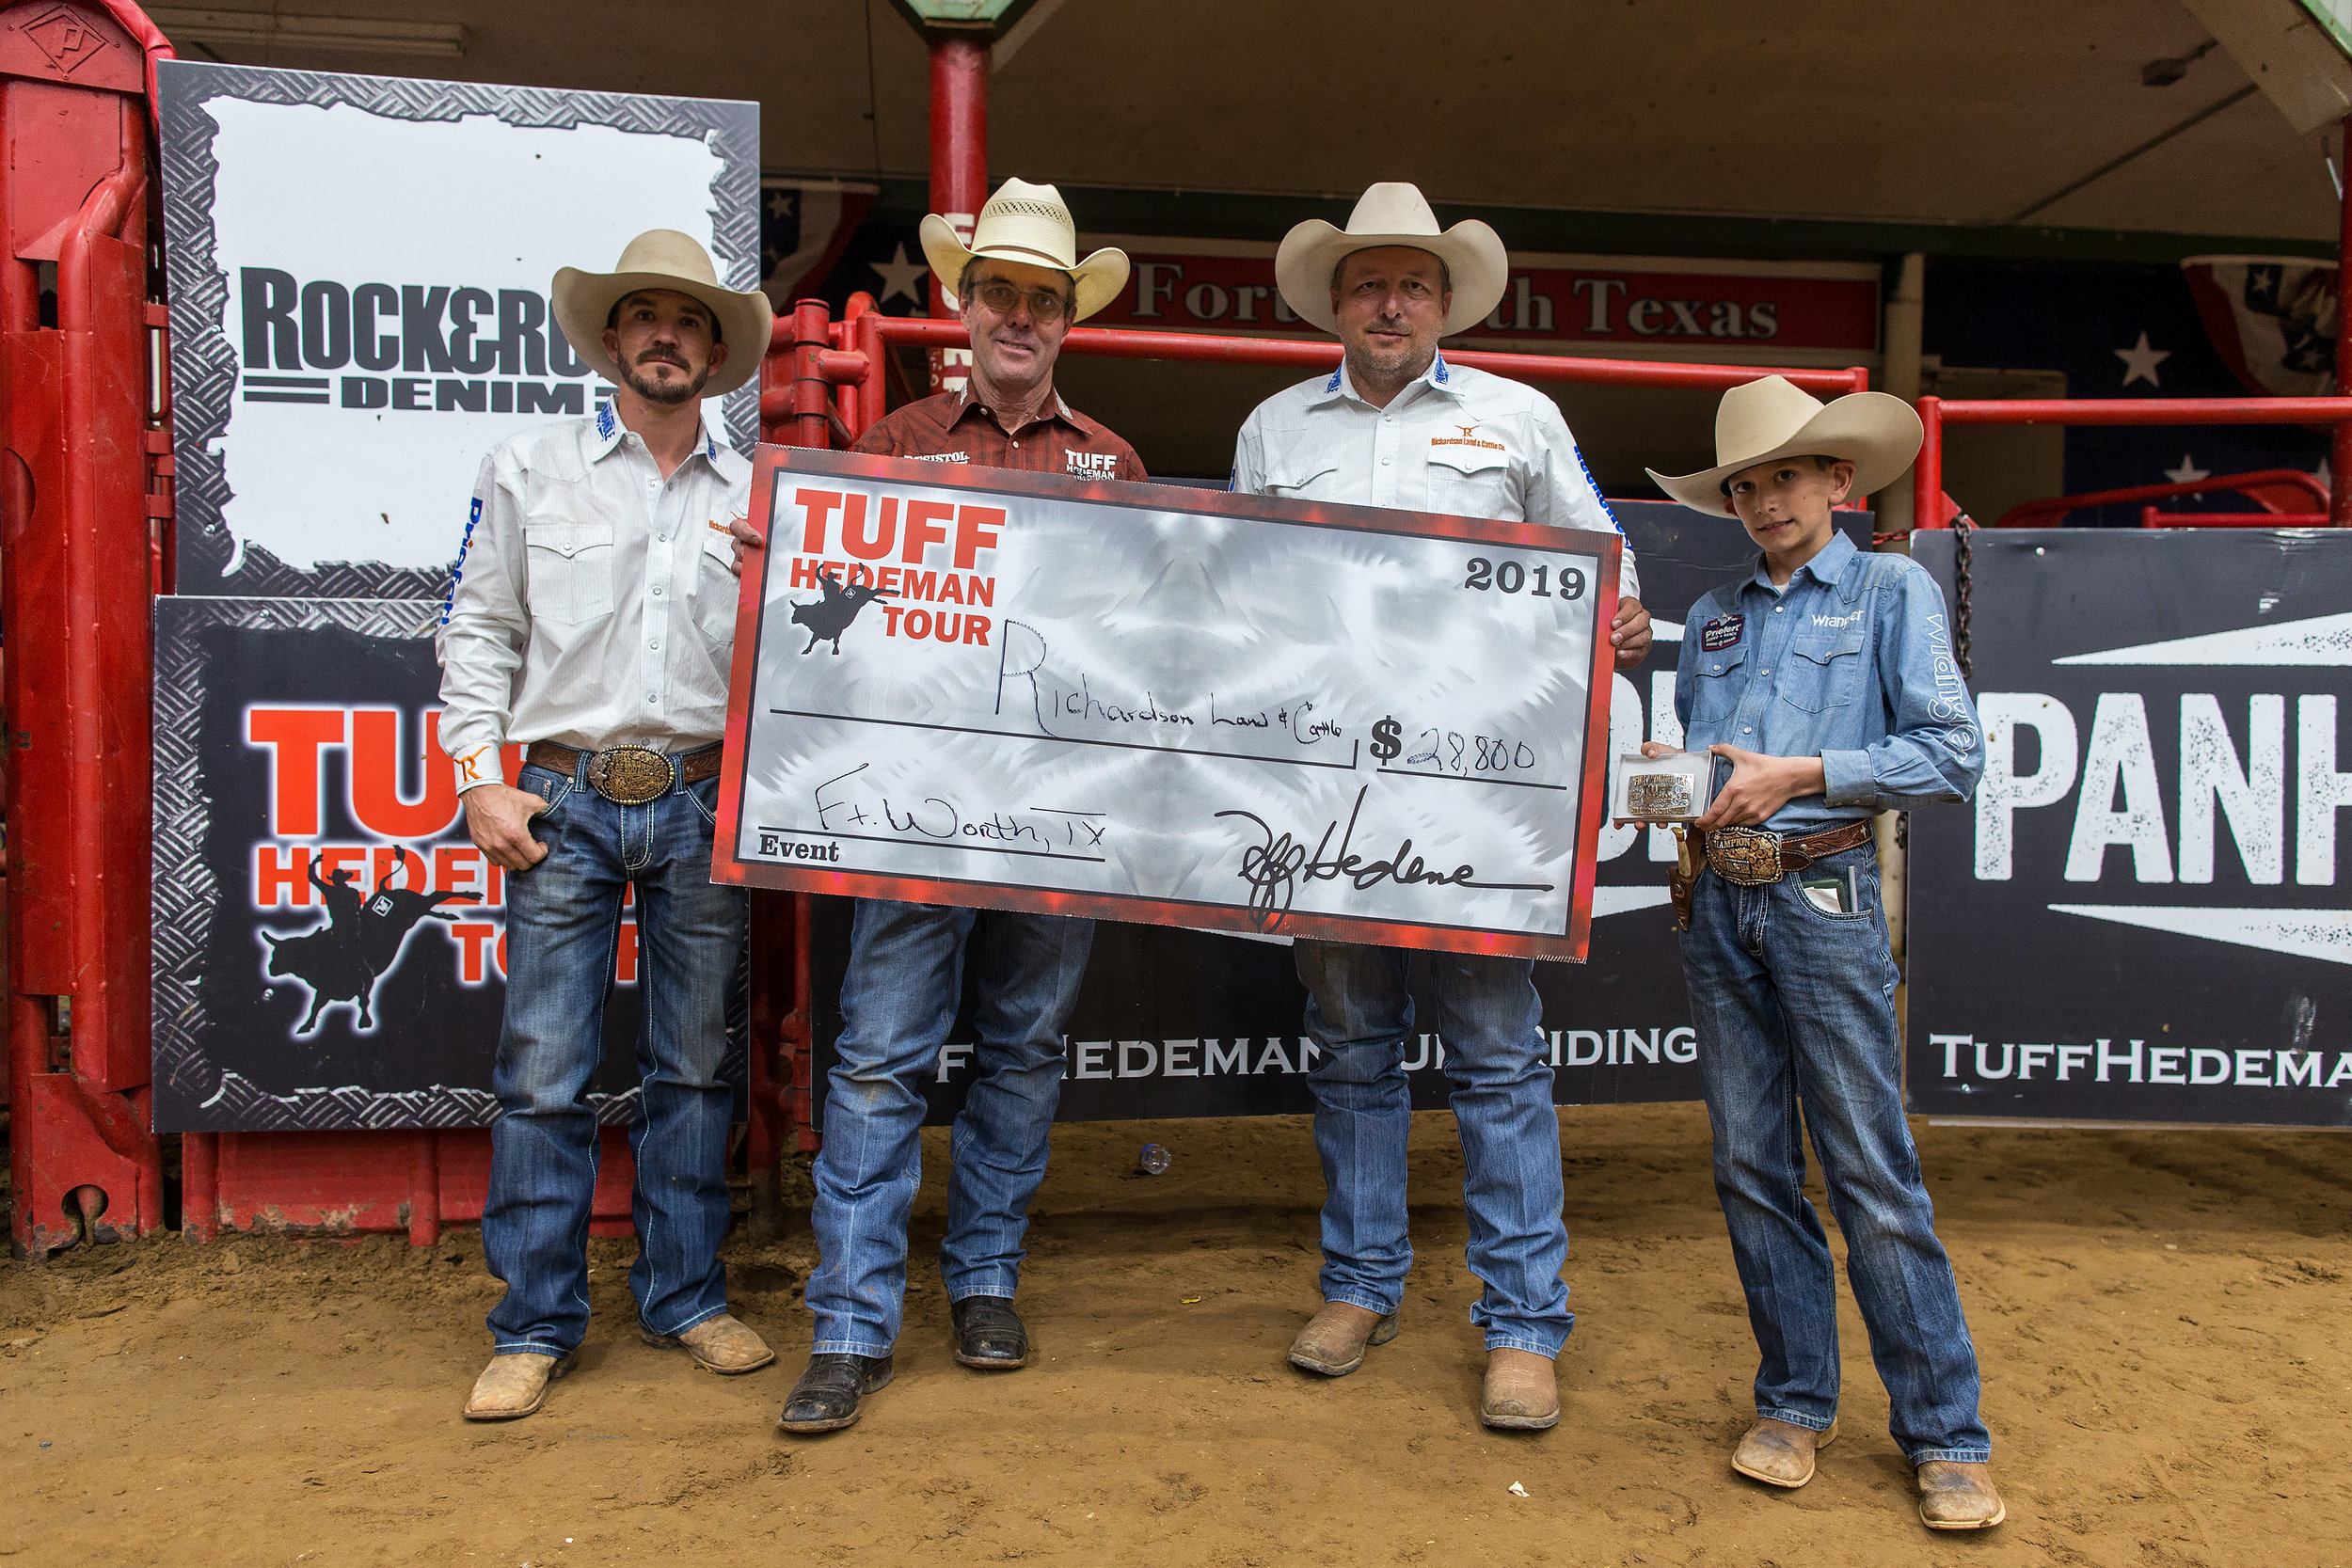 Jerry Richardson and Pistol Robinson team up to win the Tuff Hedeman Bull Team Challenge in Fort Worth.